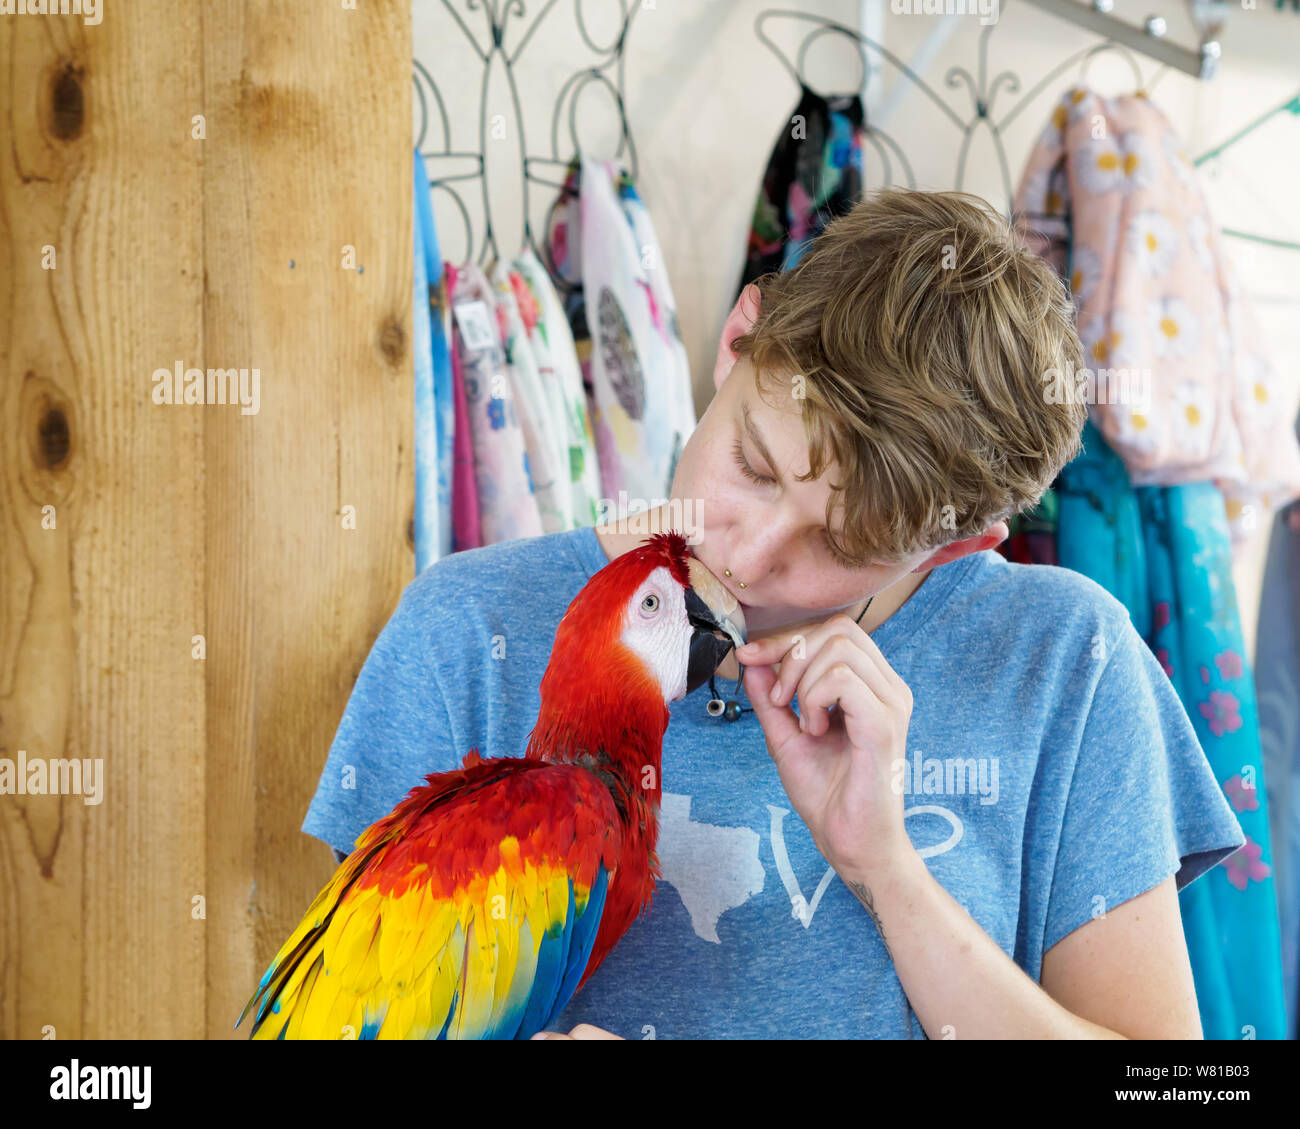 a-young-female-volunteer-kisses-the-beak-of-a-scarlet-macaw-ara-macao-in-the-gift-shop-of-the-south-texas-botanical-gardens-nature-center-W81B03.jpg